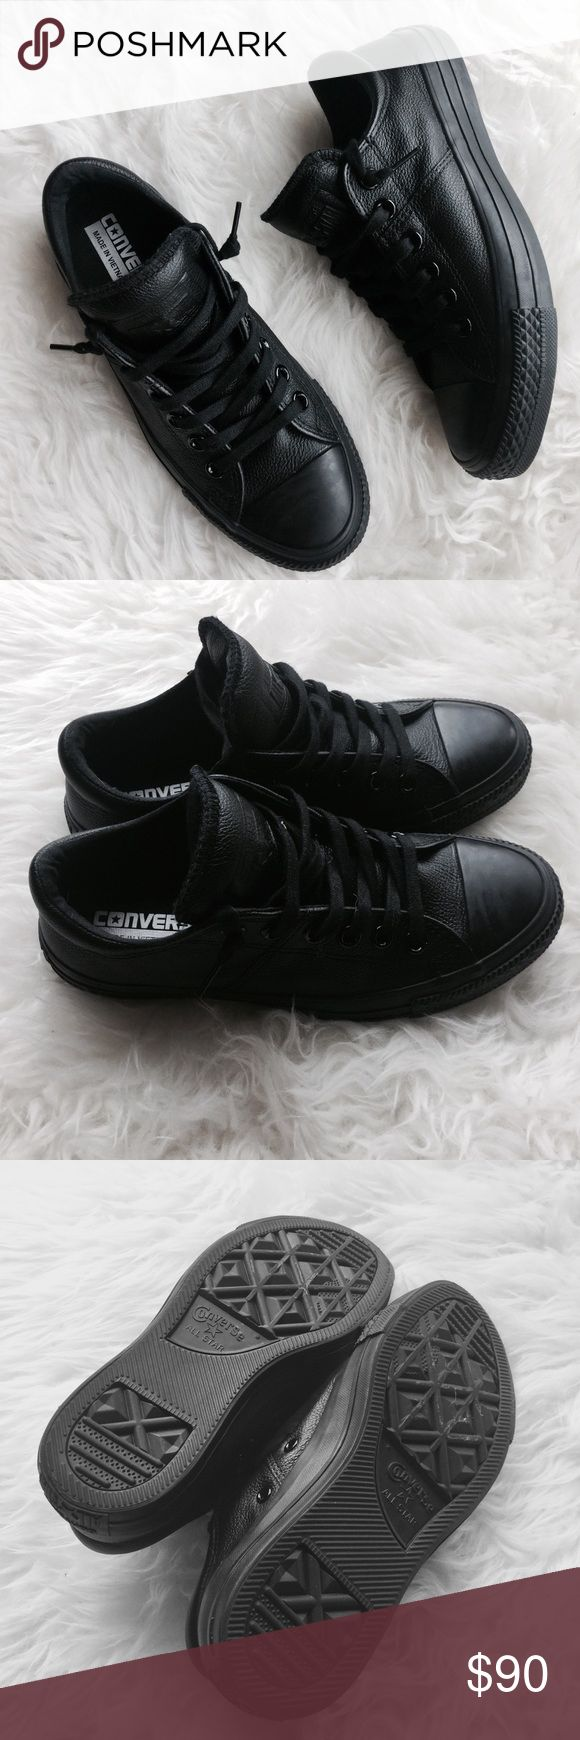 Black on Black Genuine Leather Low Top Converse Size 6.5. New without box. Have only been tried on around the house. Super chic low top black on black genuine leather converse. Converse Shoes Sneakers